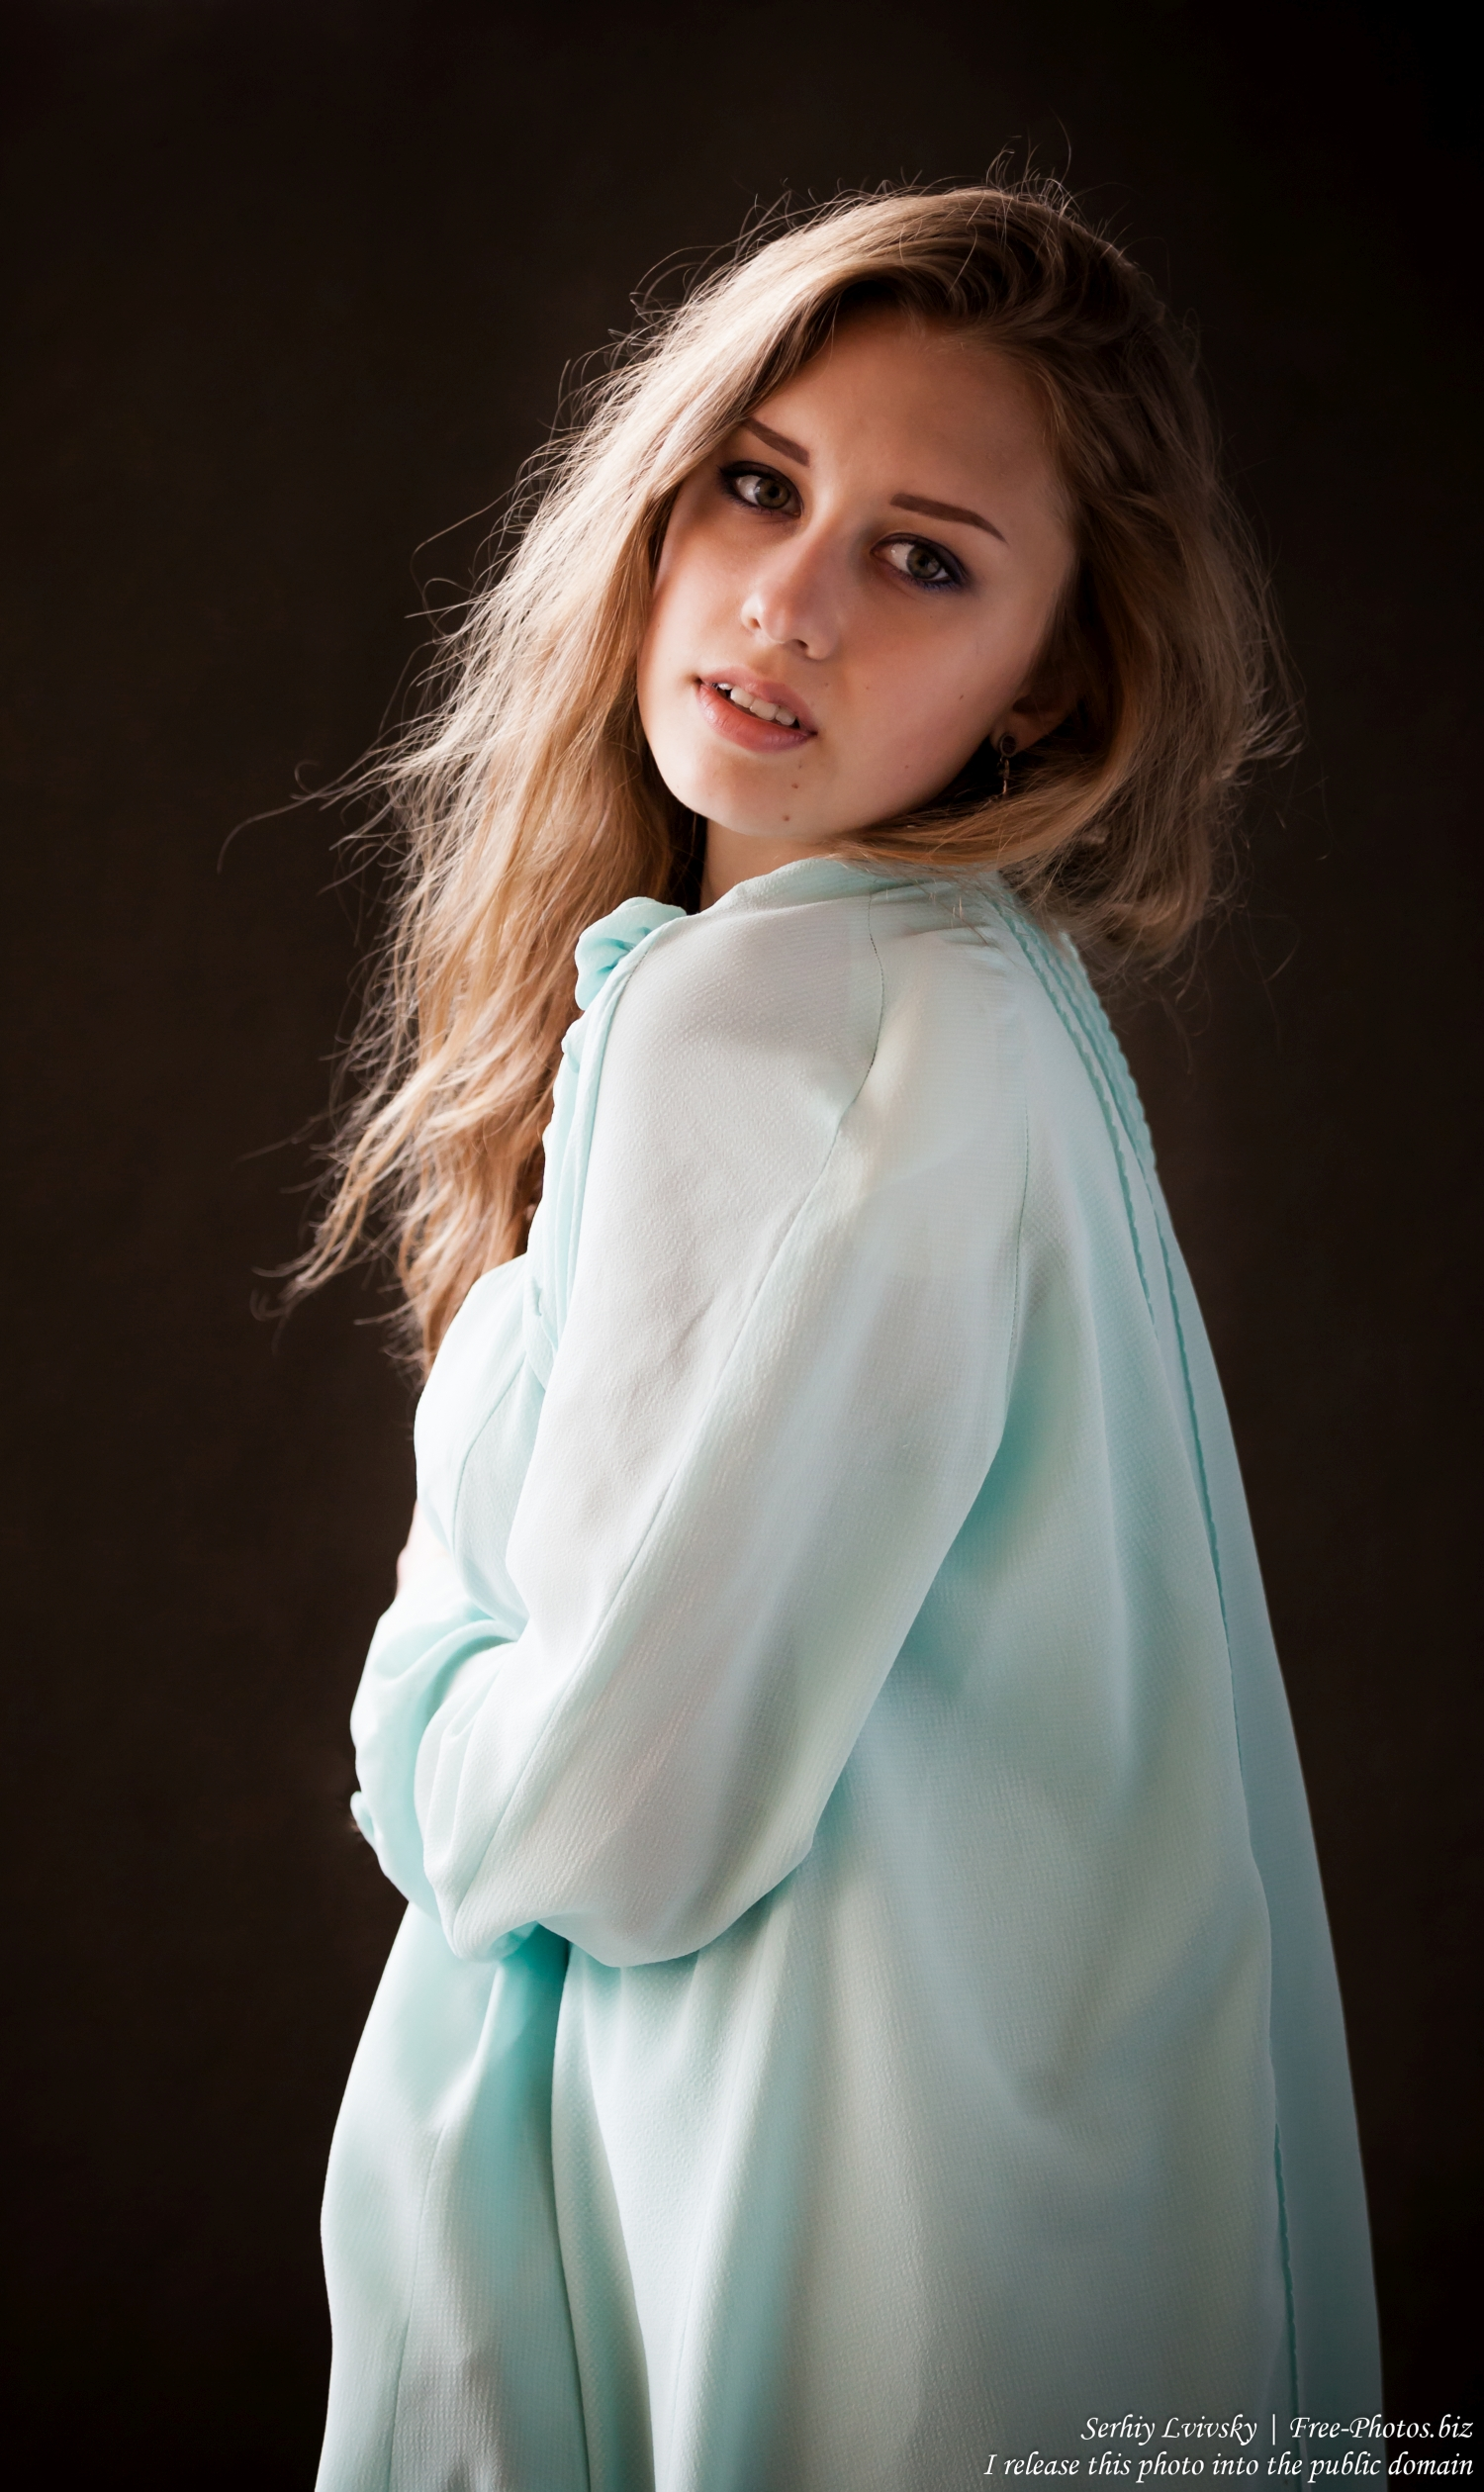 a_16-year-old_natural_blond_girl_photographed_by_serhiy_lvivsky_in_july_2016_38